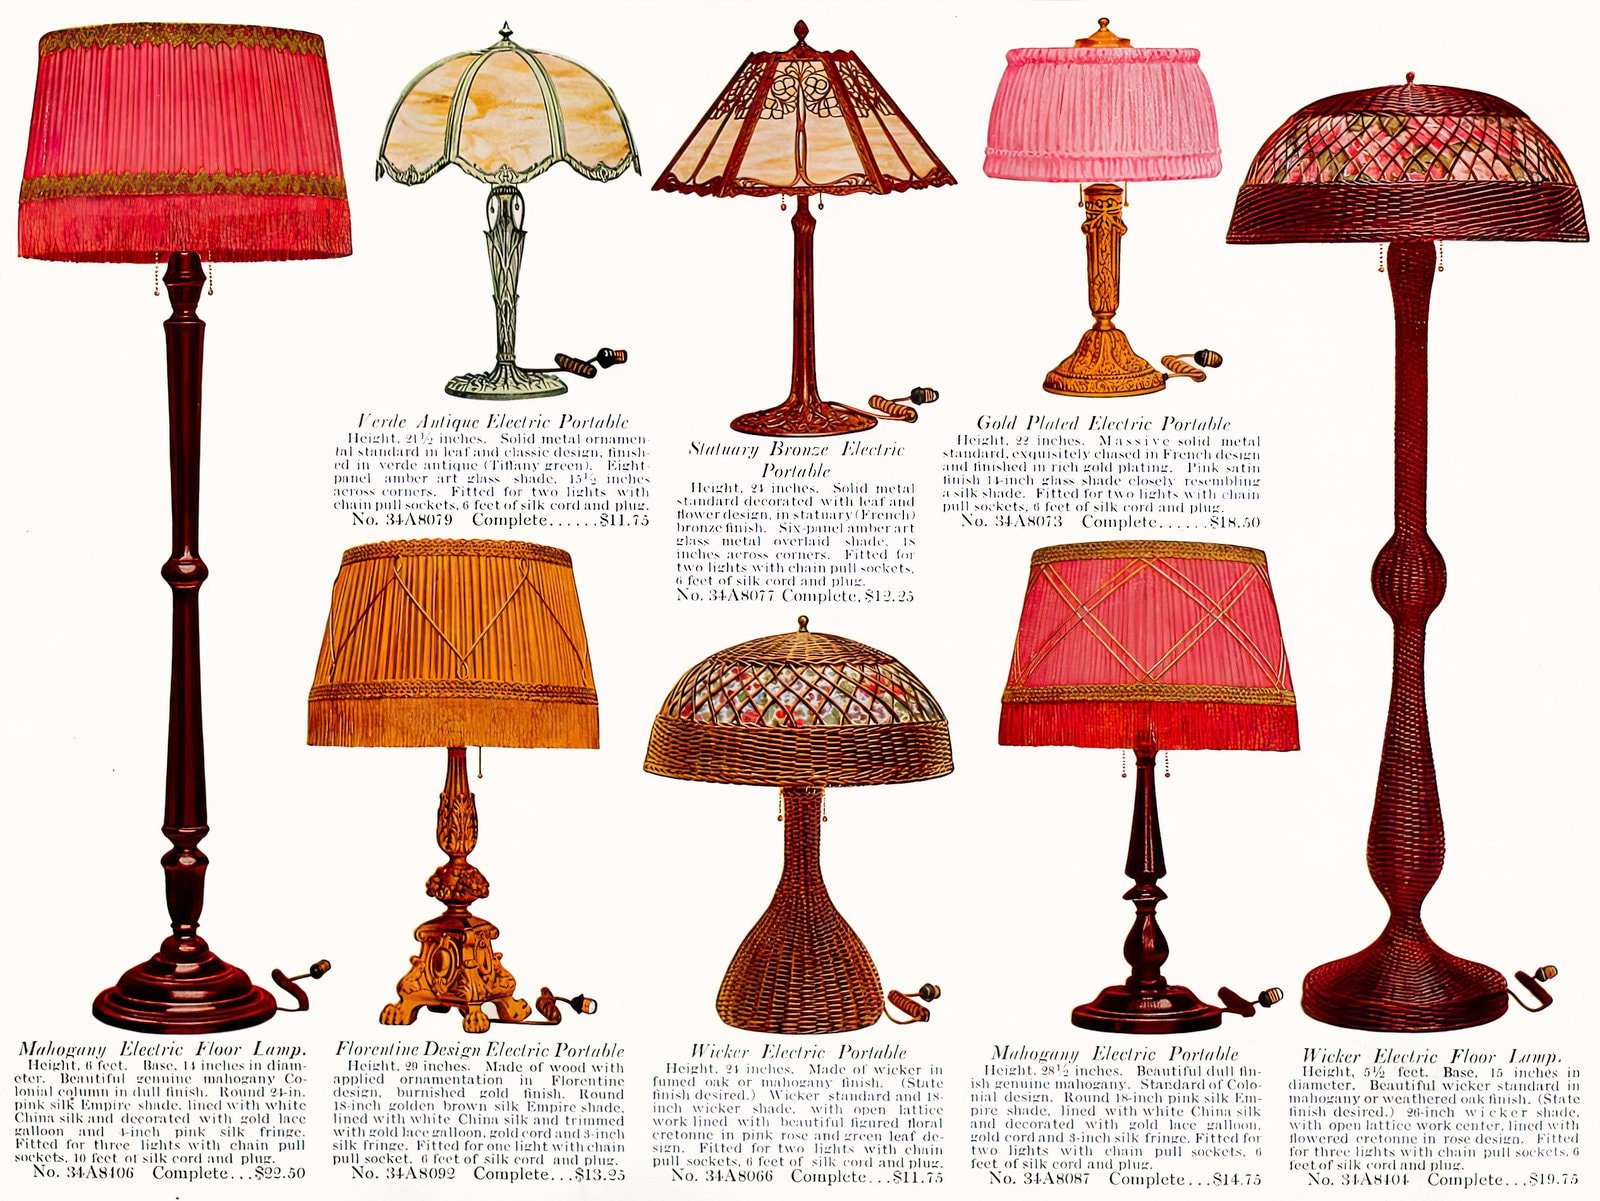 Antique electric table lamps from the early 1900s